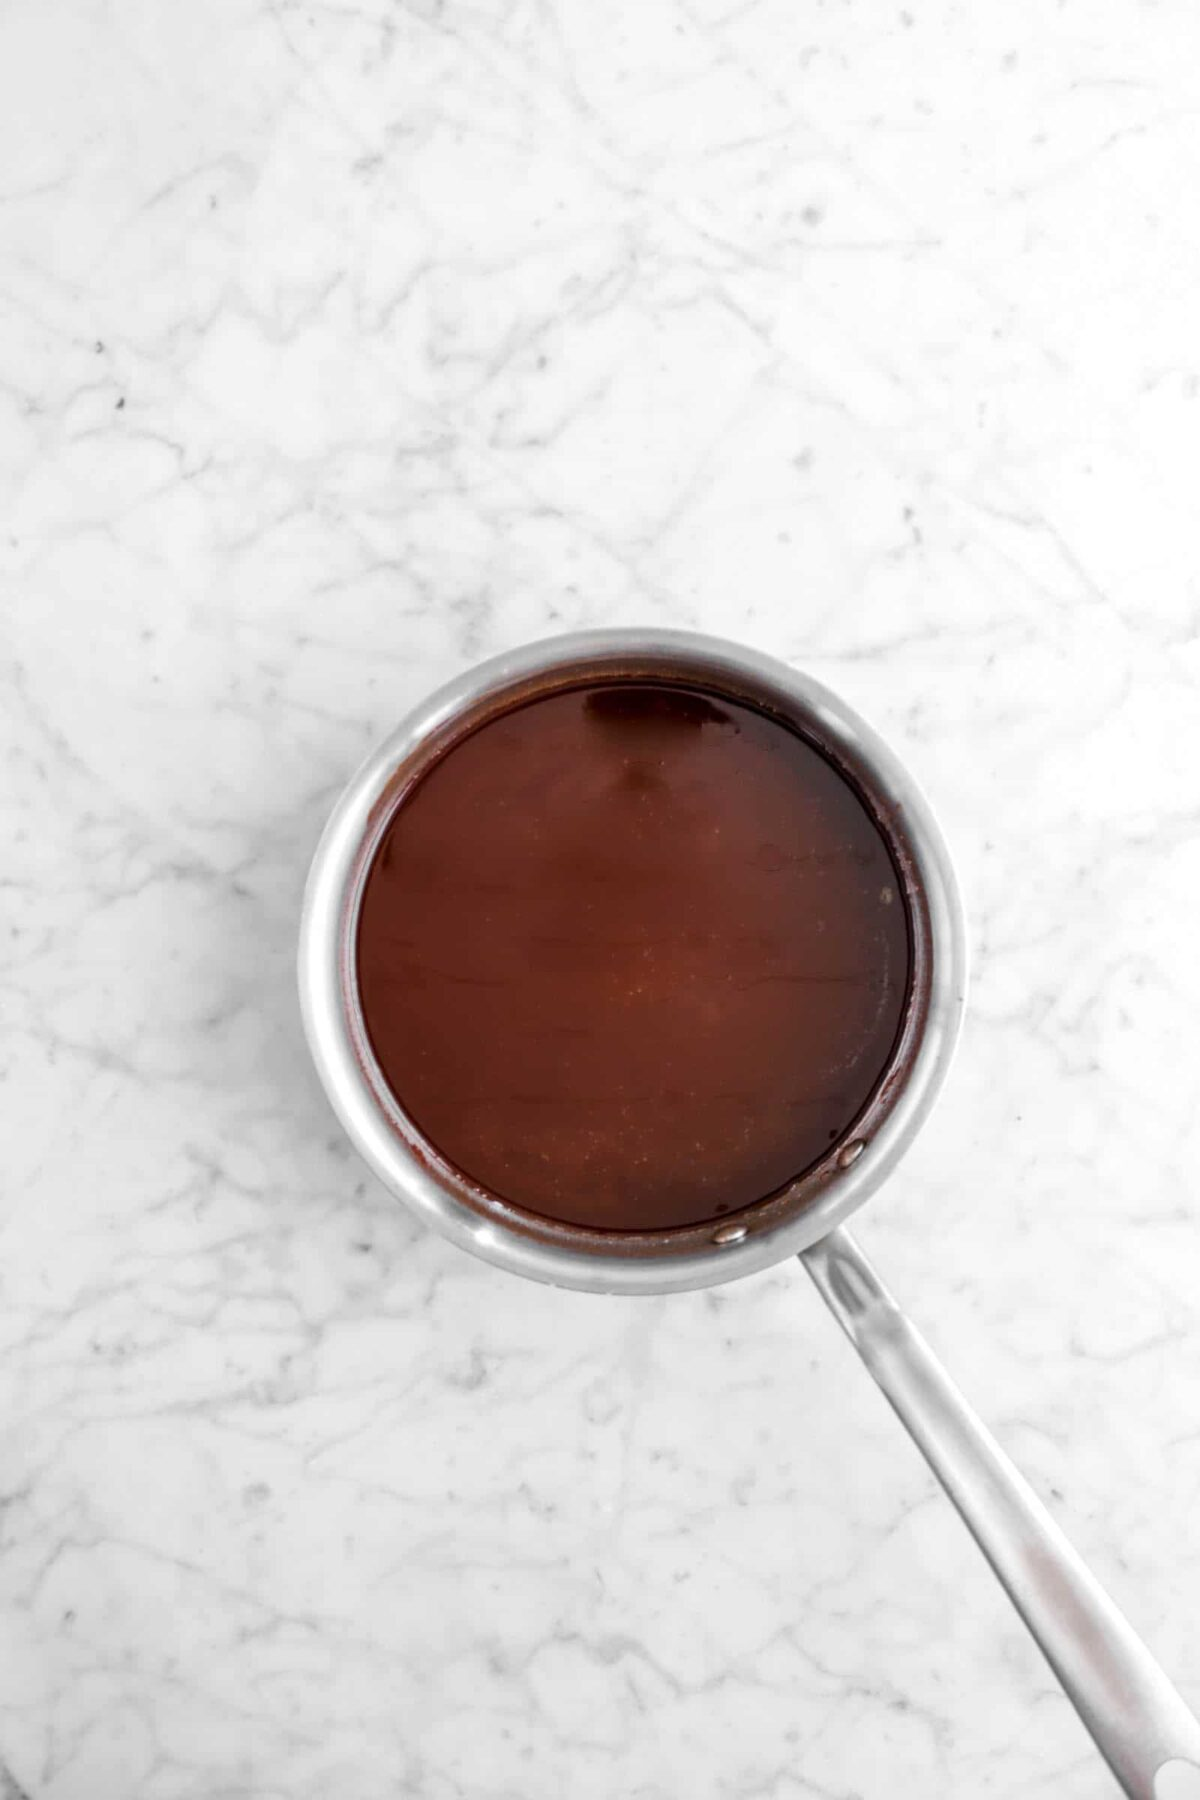 melted chocolate in a small pot